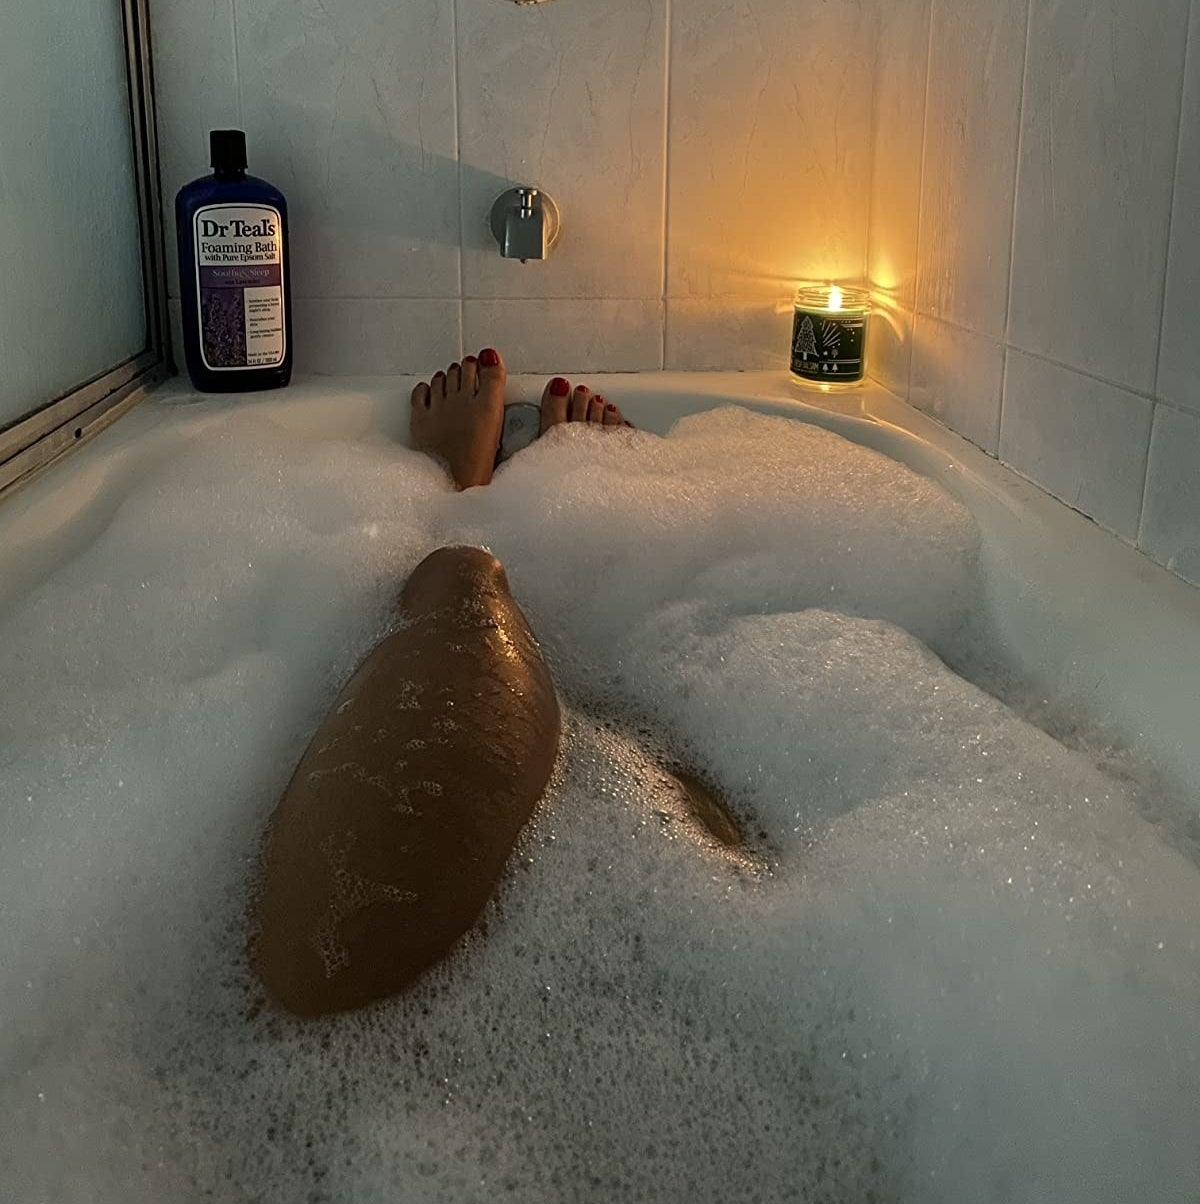 Reviewer in a bubble bath with a bottle of Dr Teal's on display on the edge of the tub